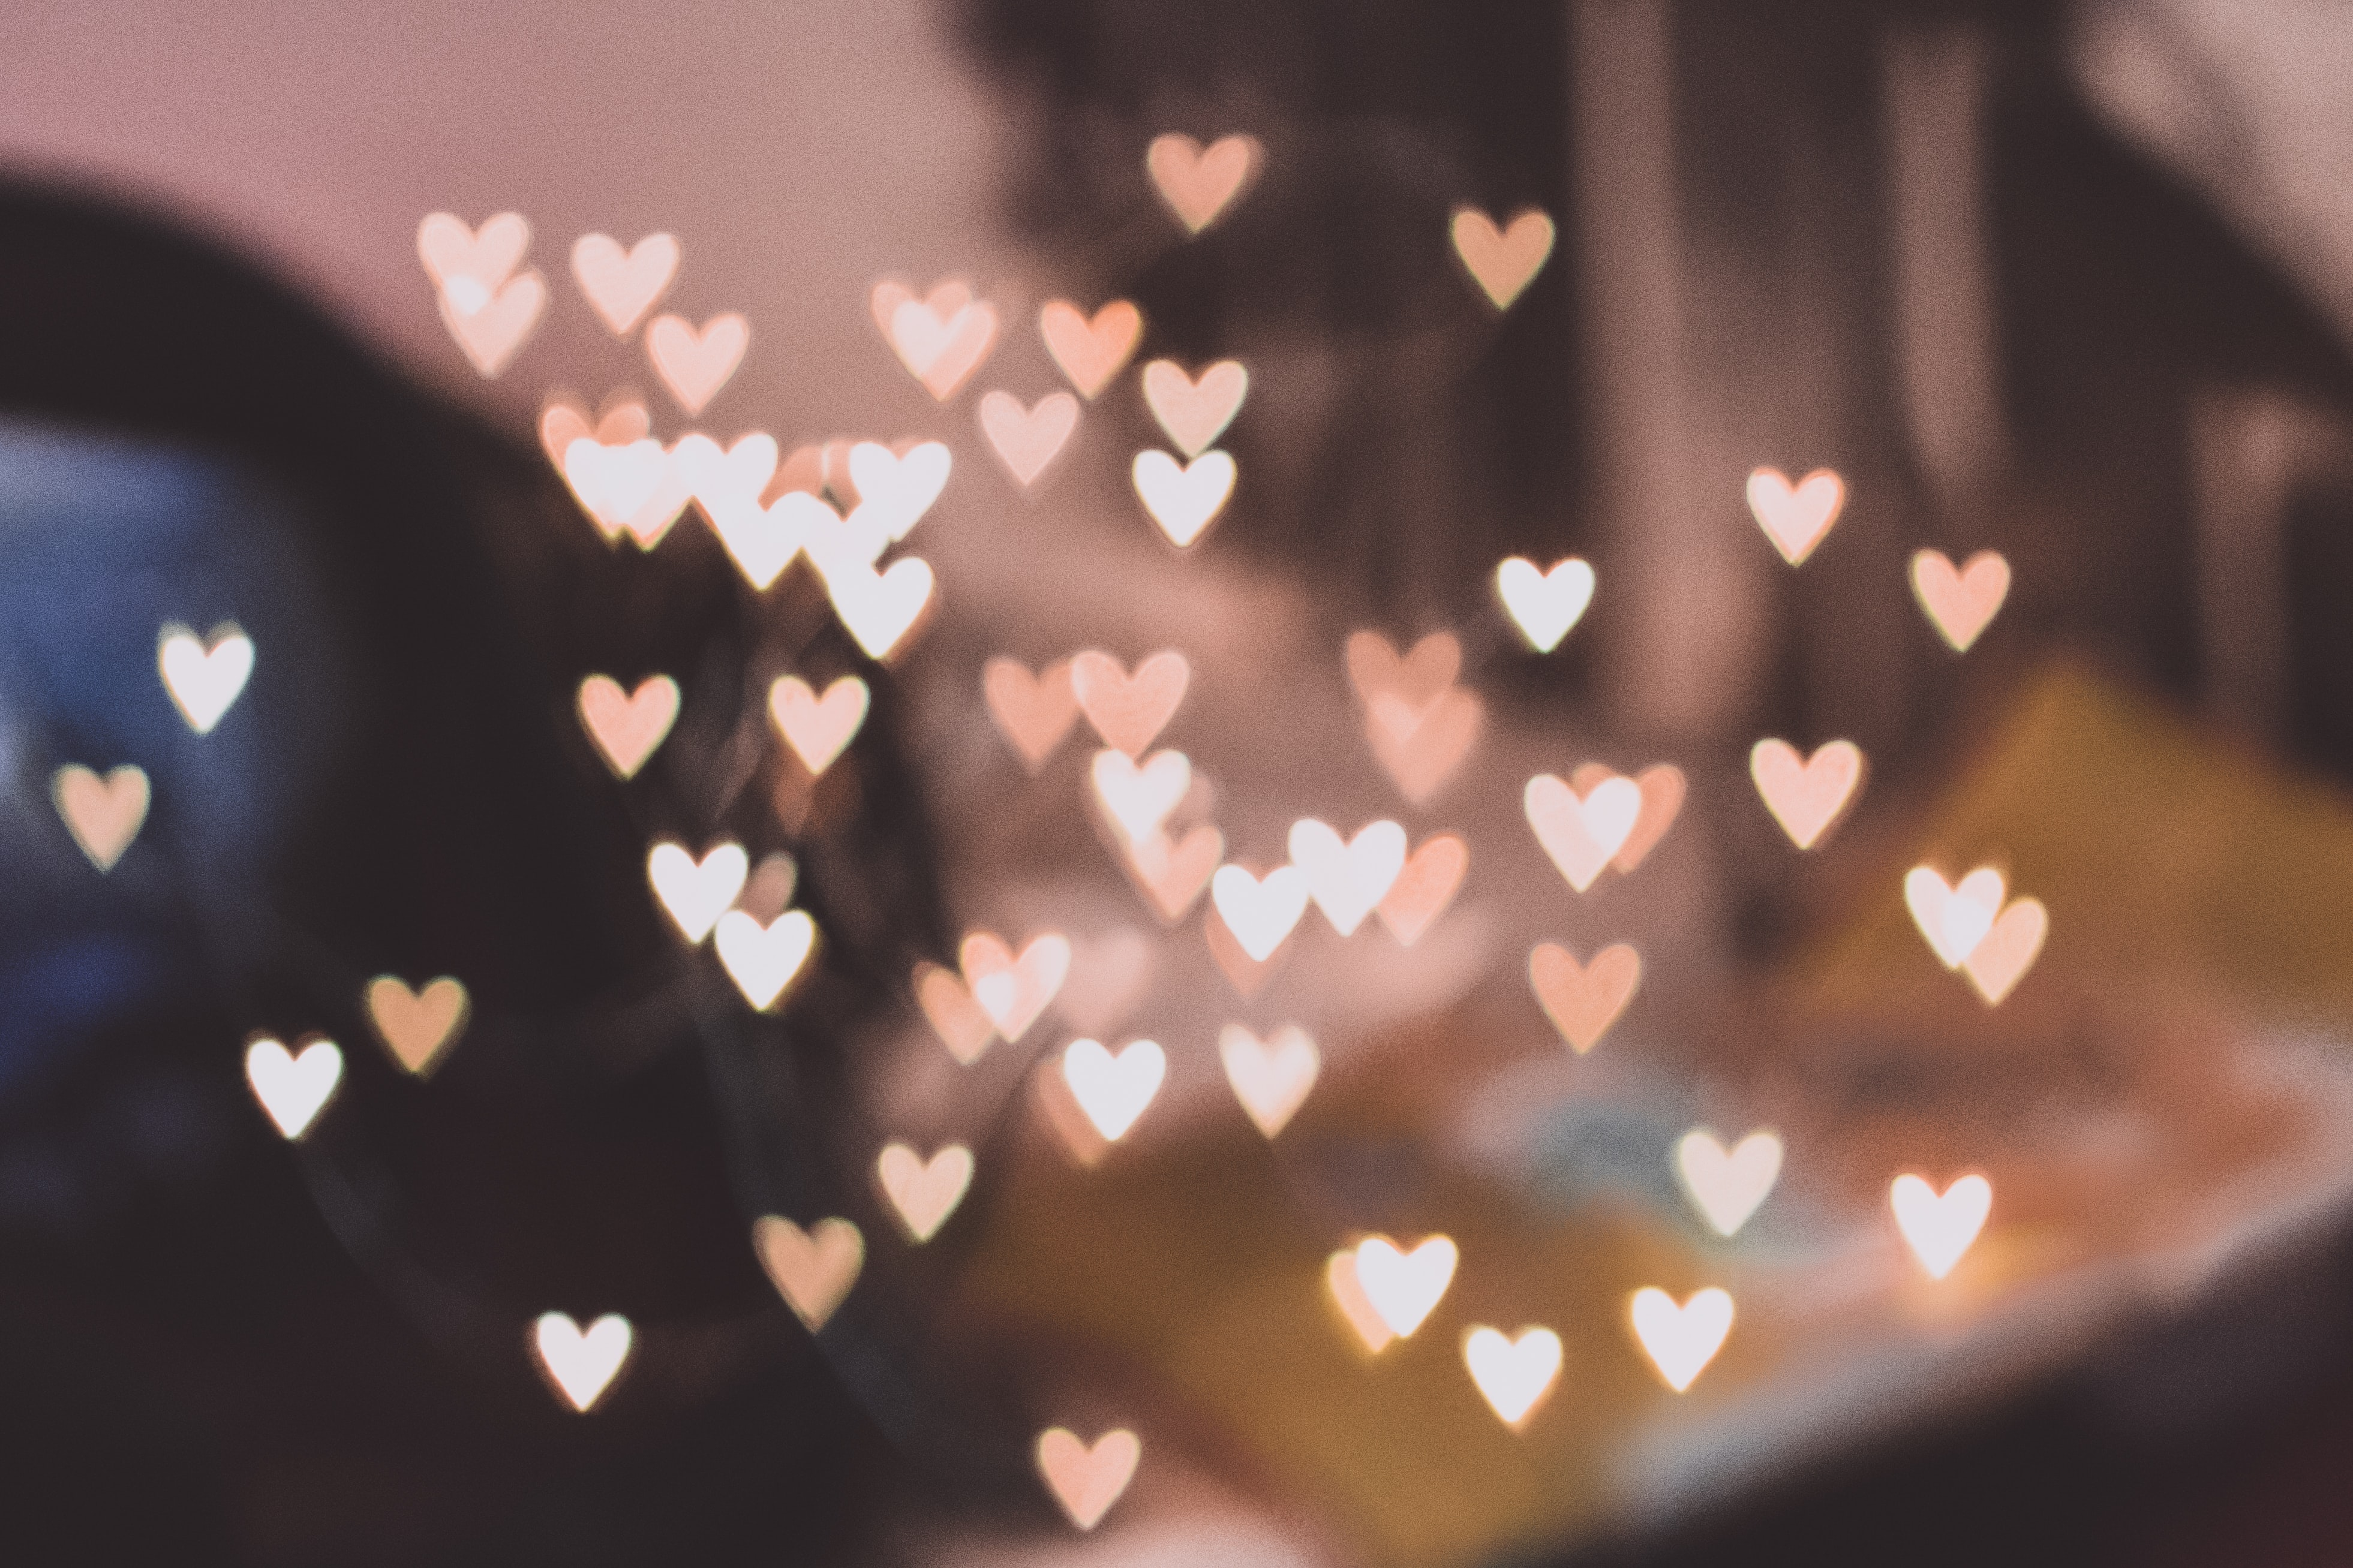 SELF-LOVE: BECOMING YOUR OWNVALENTINE